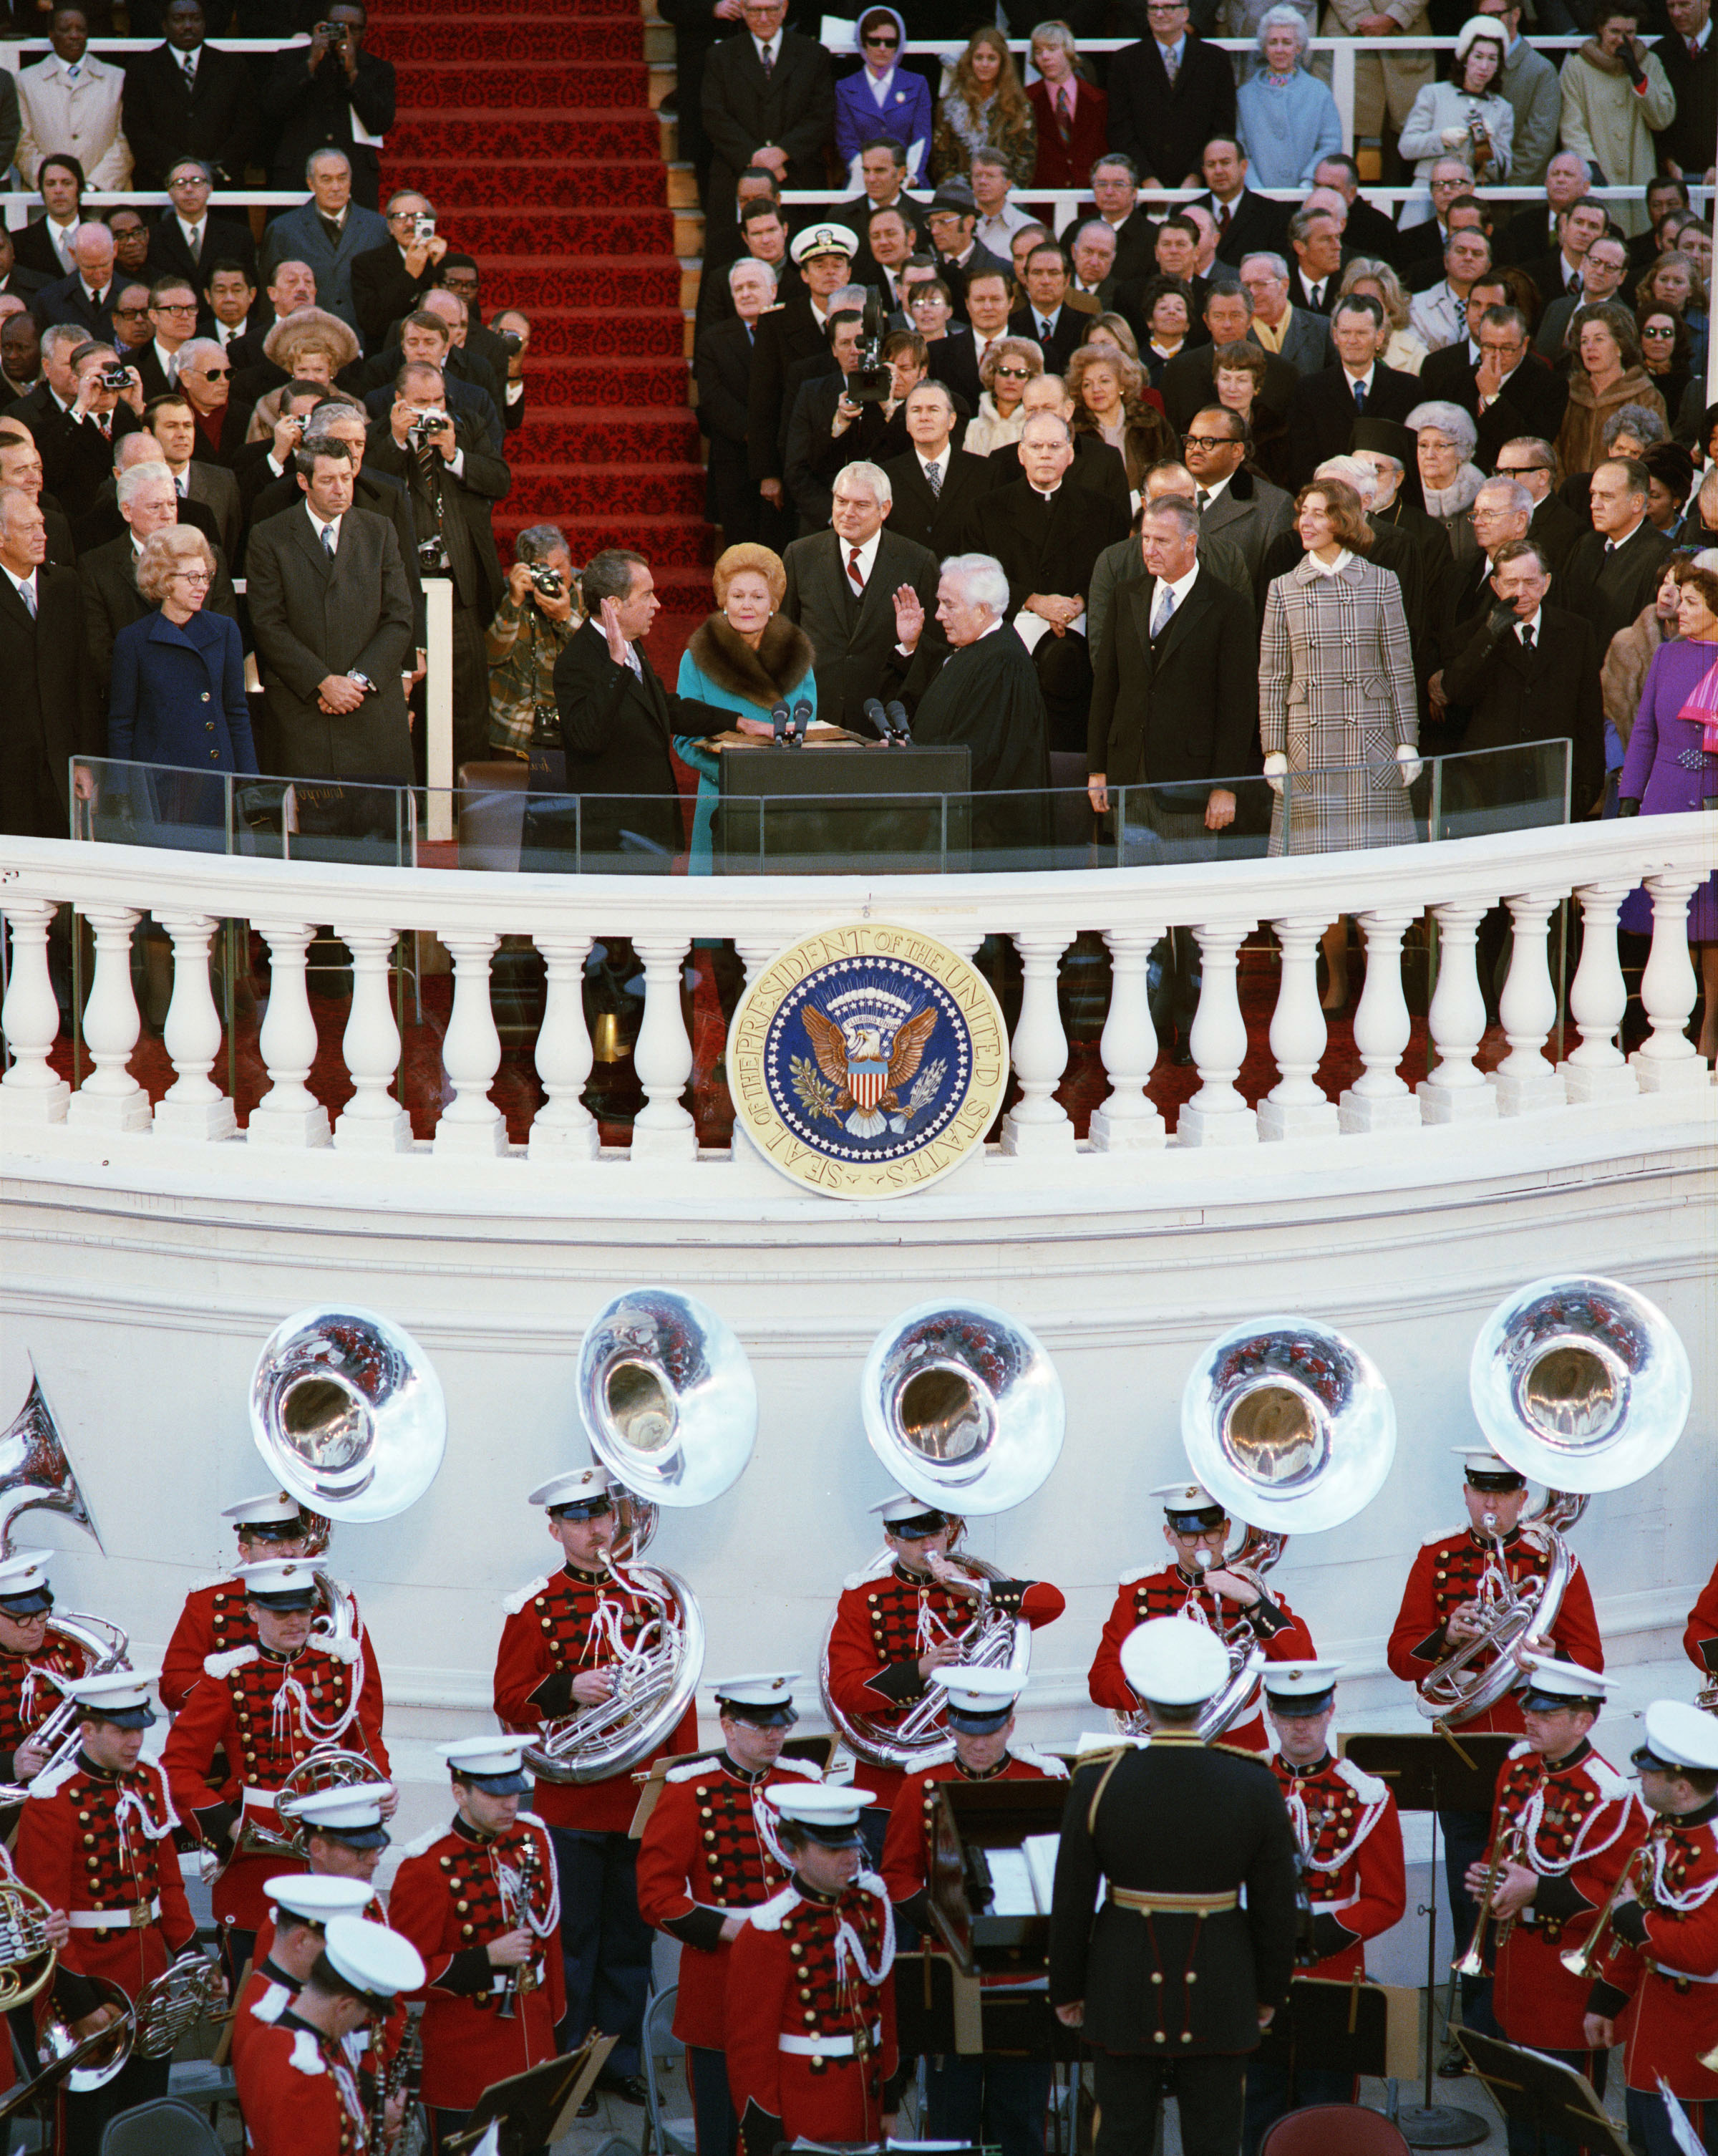 President Nixon taking the oath of Office during his second inauguration, 01/20/1973. (National Archives Identifier: 7268203)